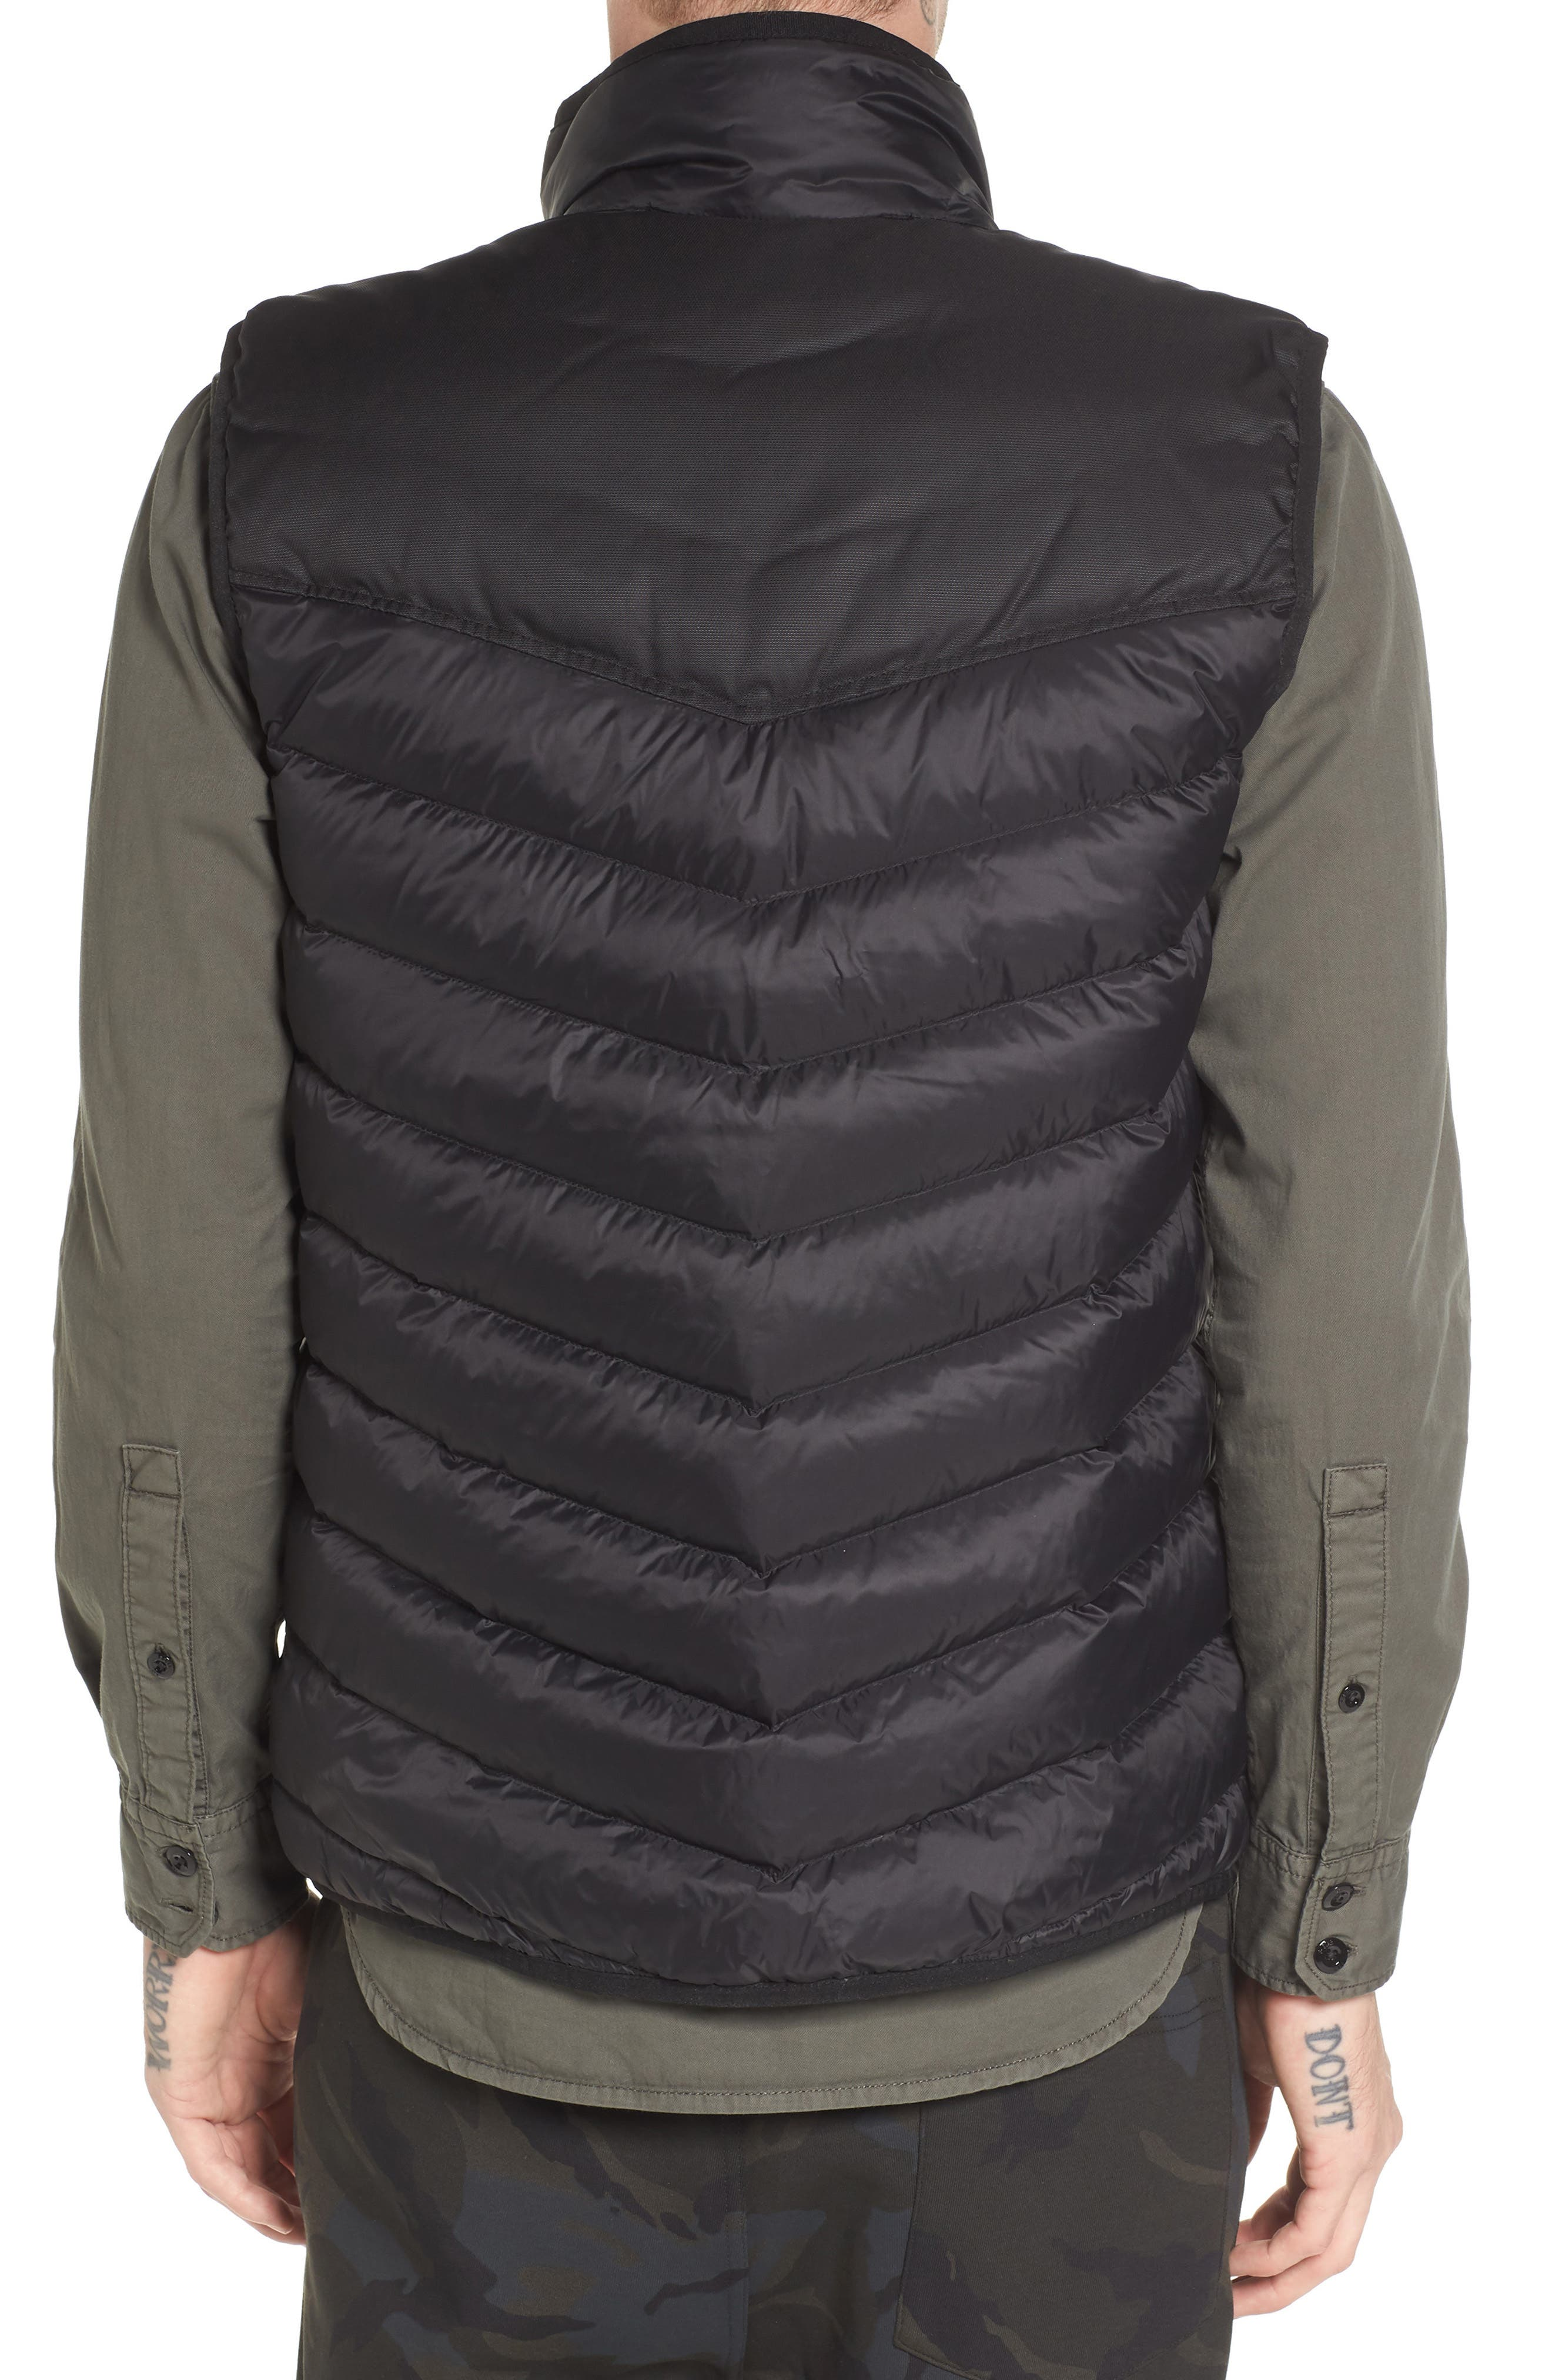 Attacc Down Vest,                             Alternate thumbnail 2, color,                             Black